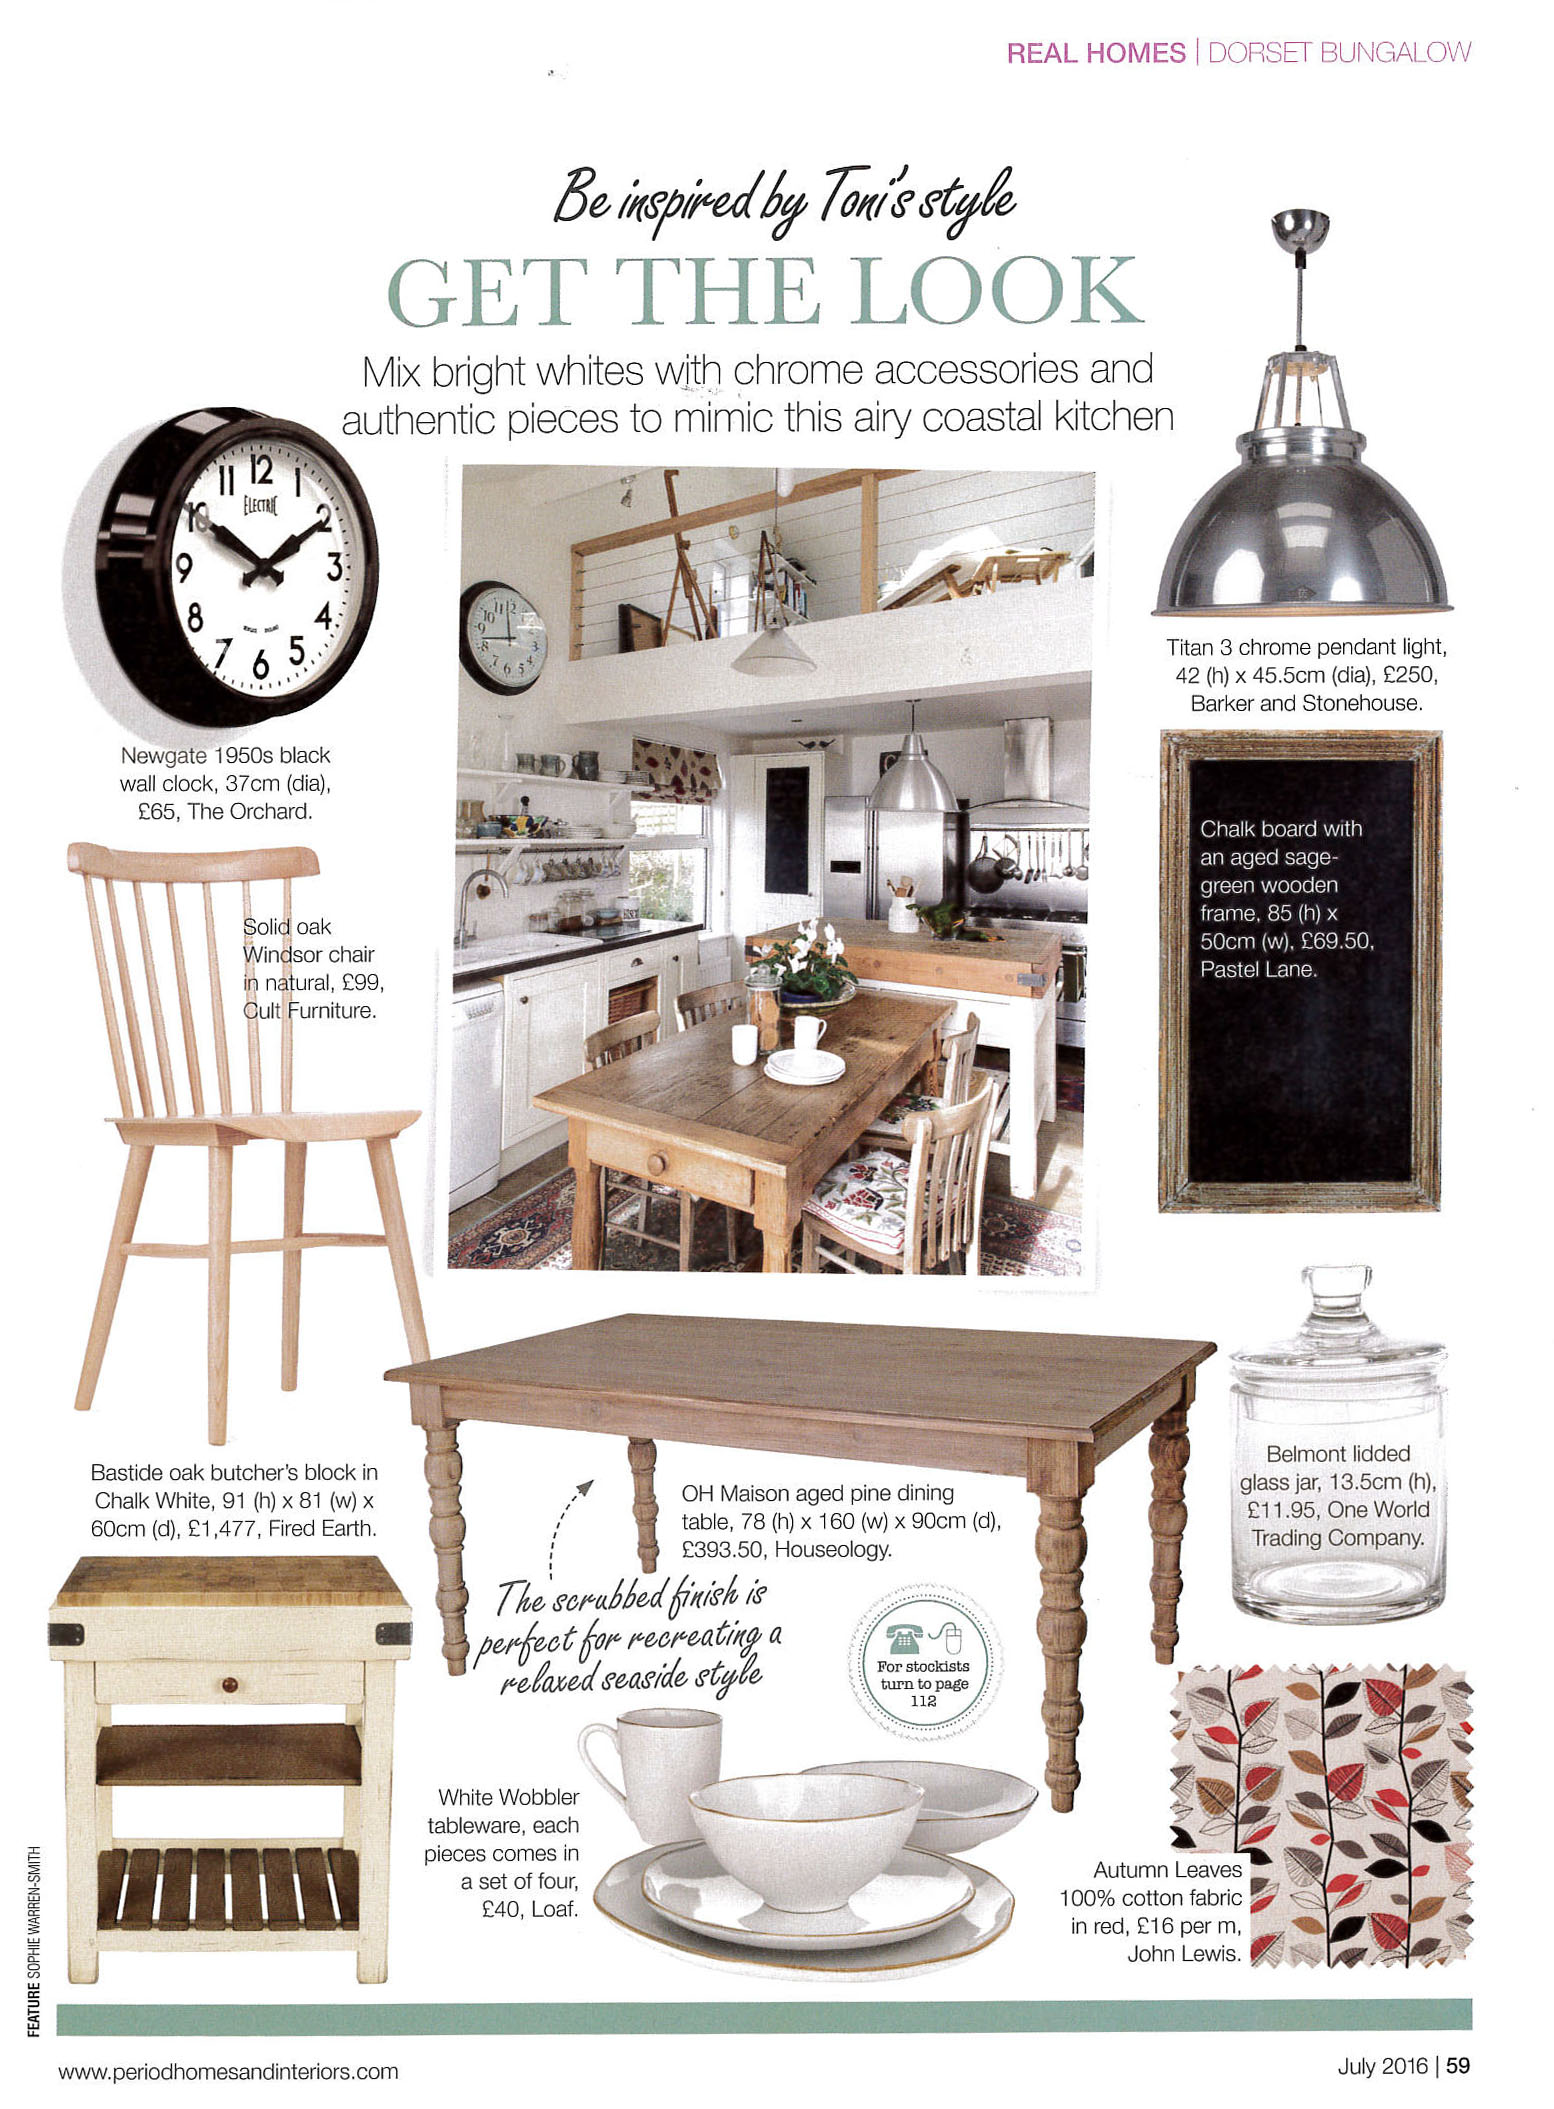 Period Homes & Interiors - Your House | Barker and Stonehouse